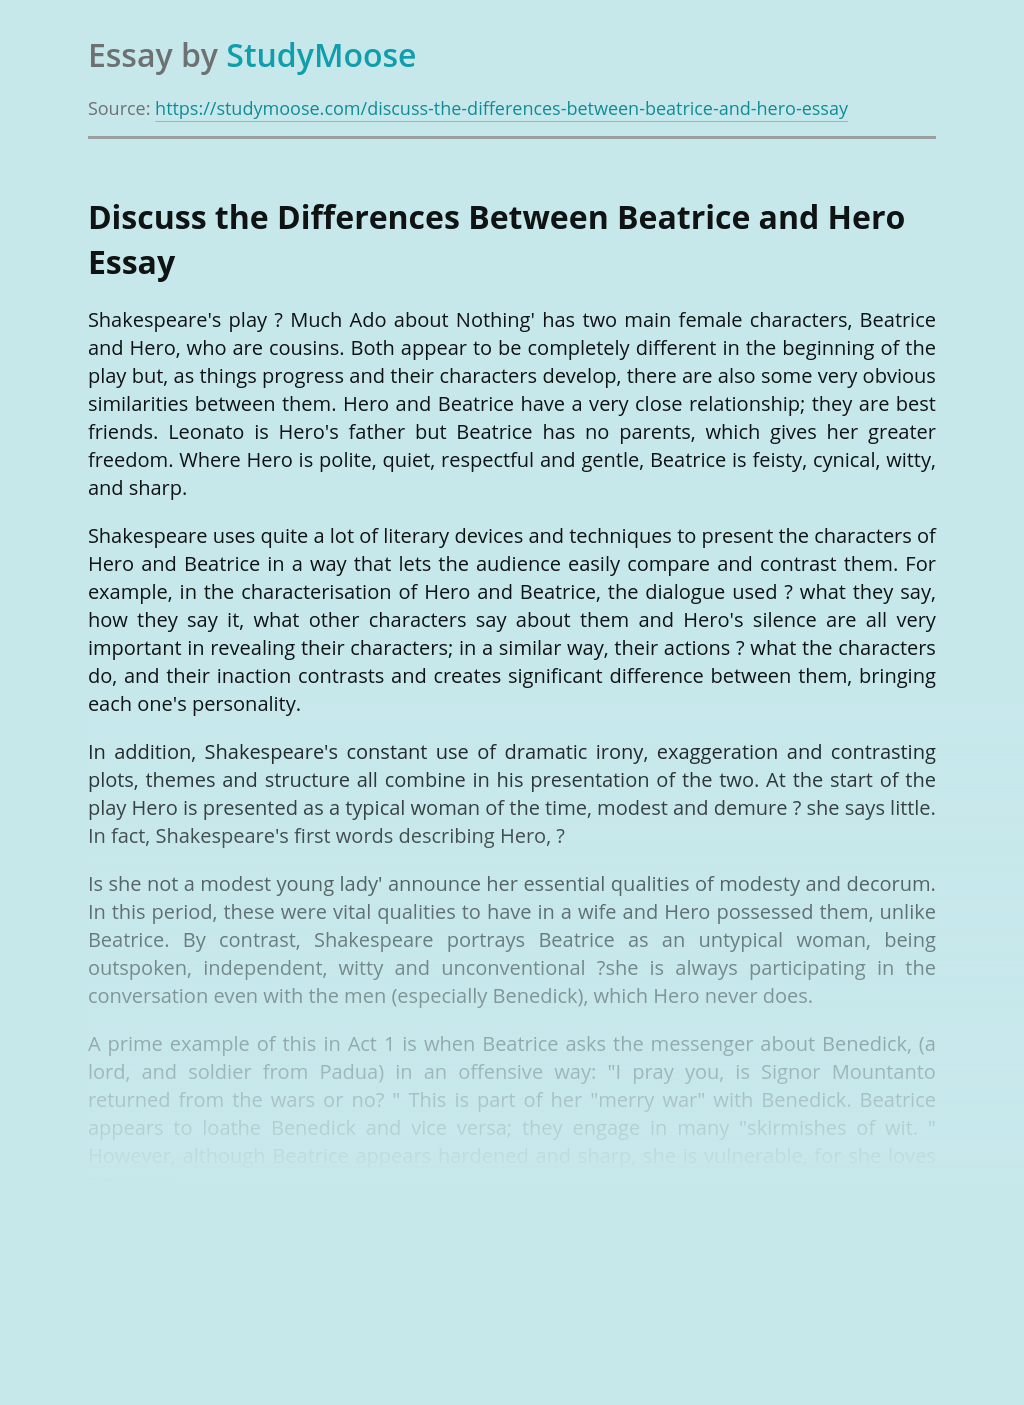 Discuss the Differences Between Beatrice and Hero